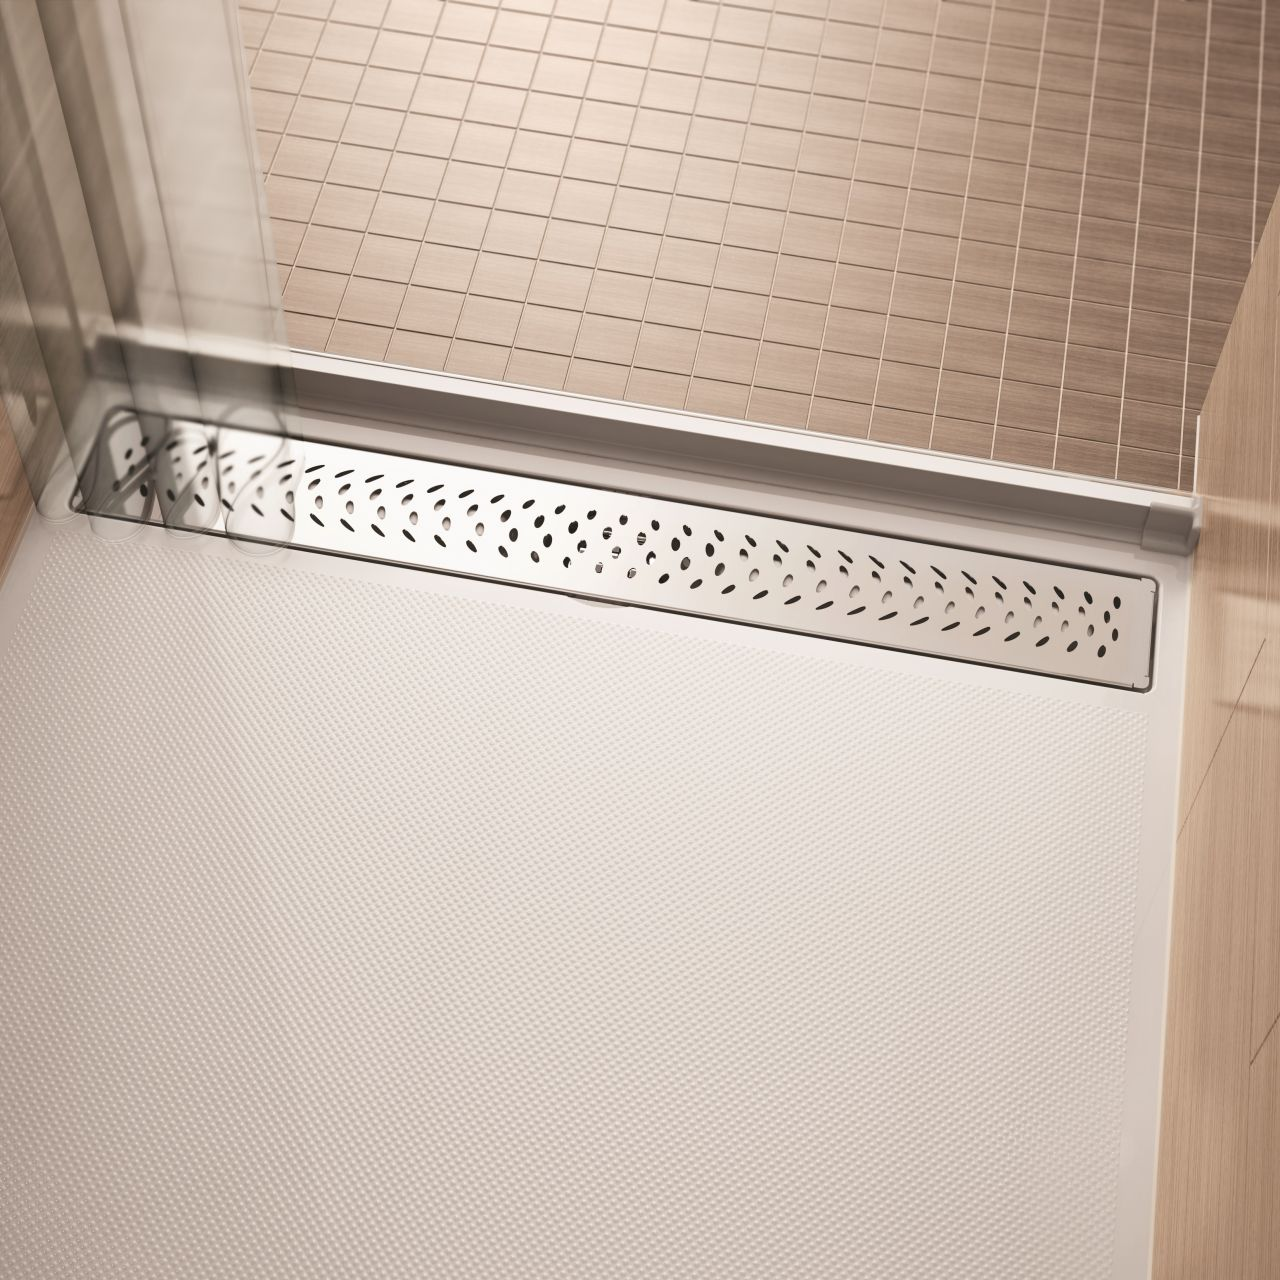 acrylic roll in shower pan with a water barrier strip | Innovate Building Solutions